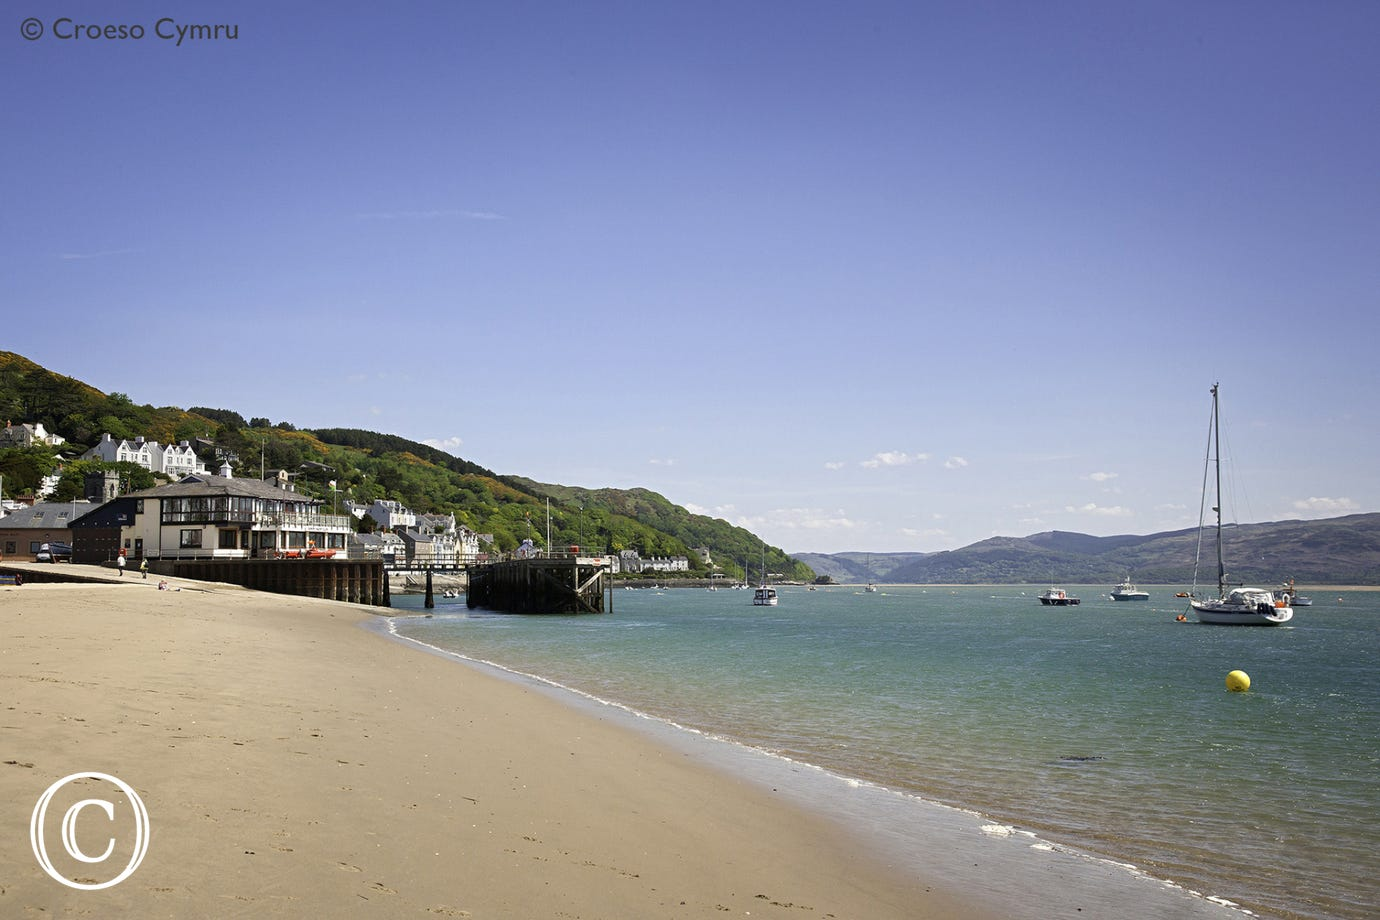 Aberdyfi's long sandy beach on the northern side of the Dyfi Estuary